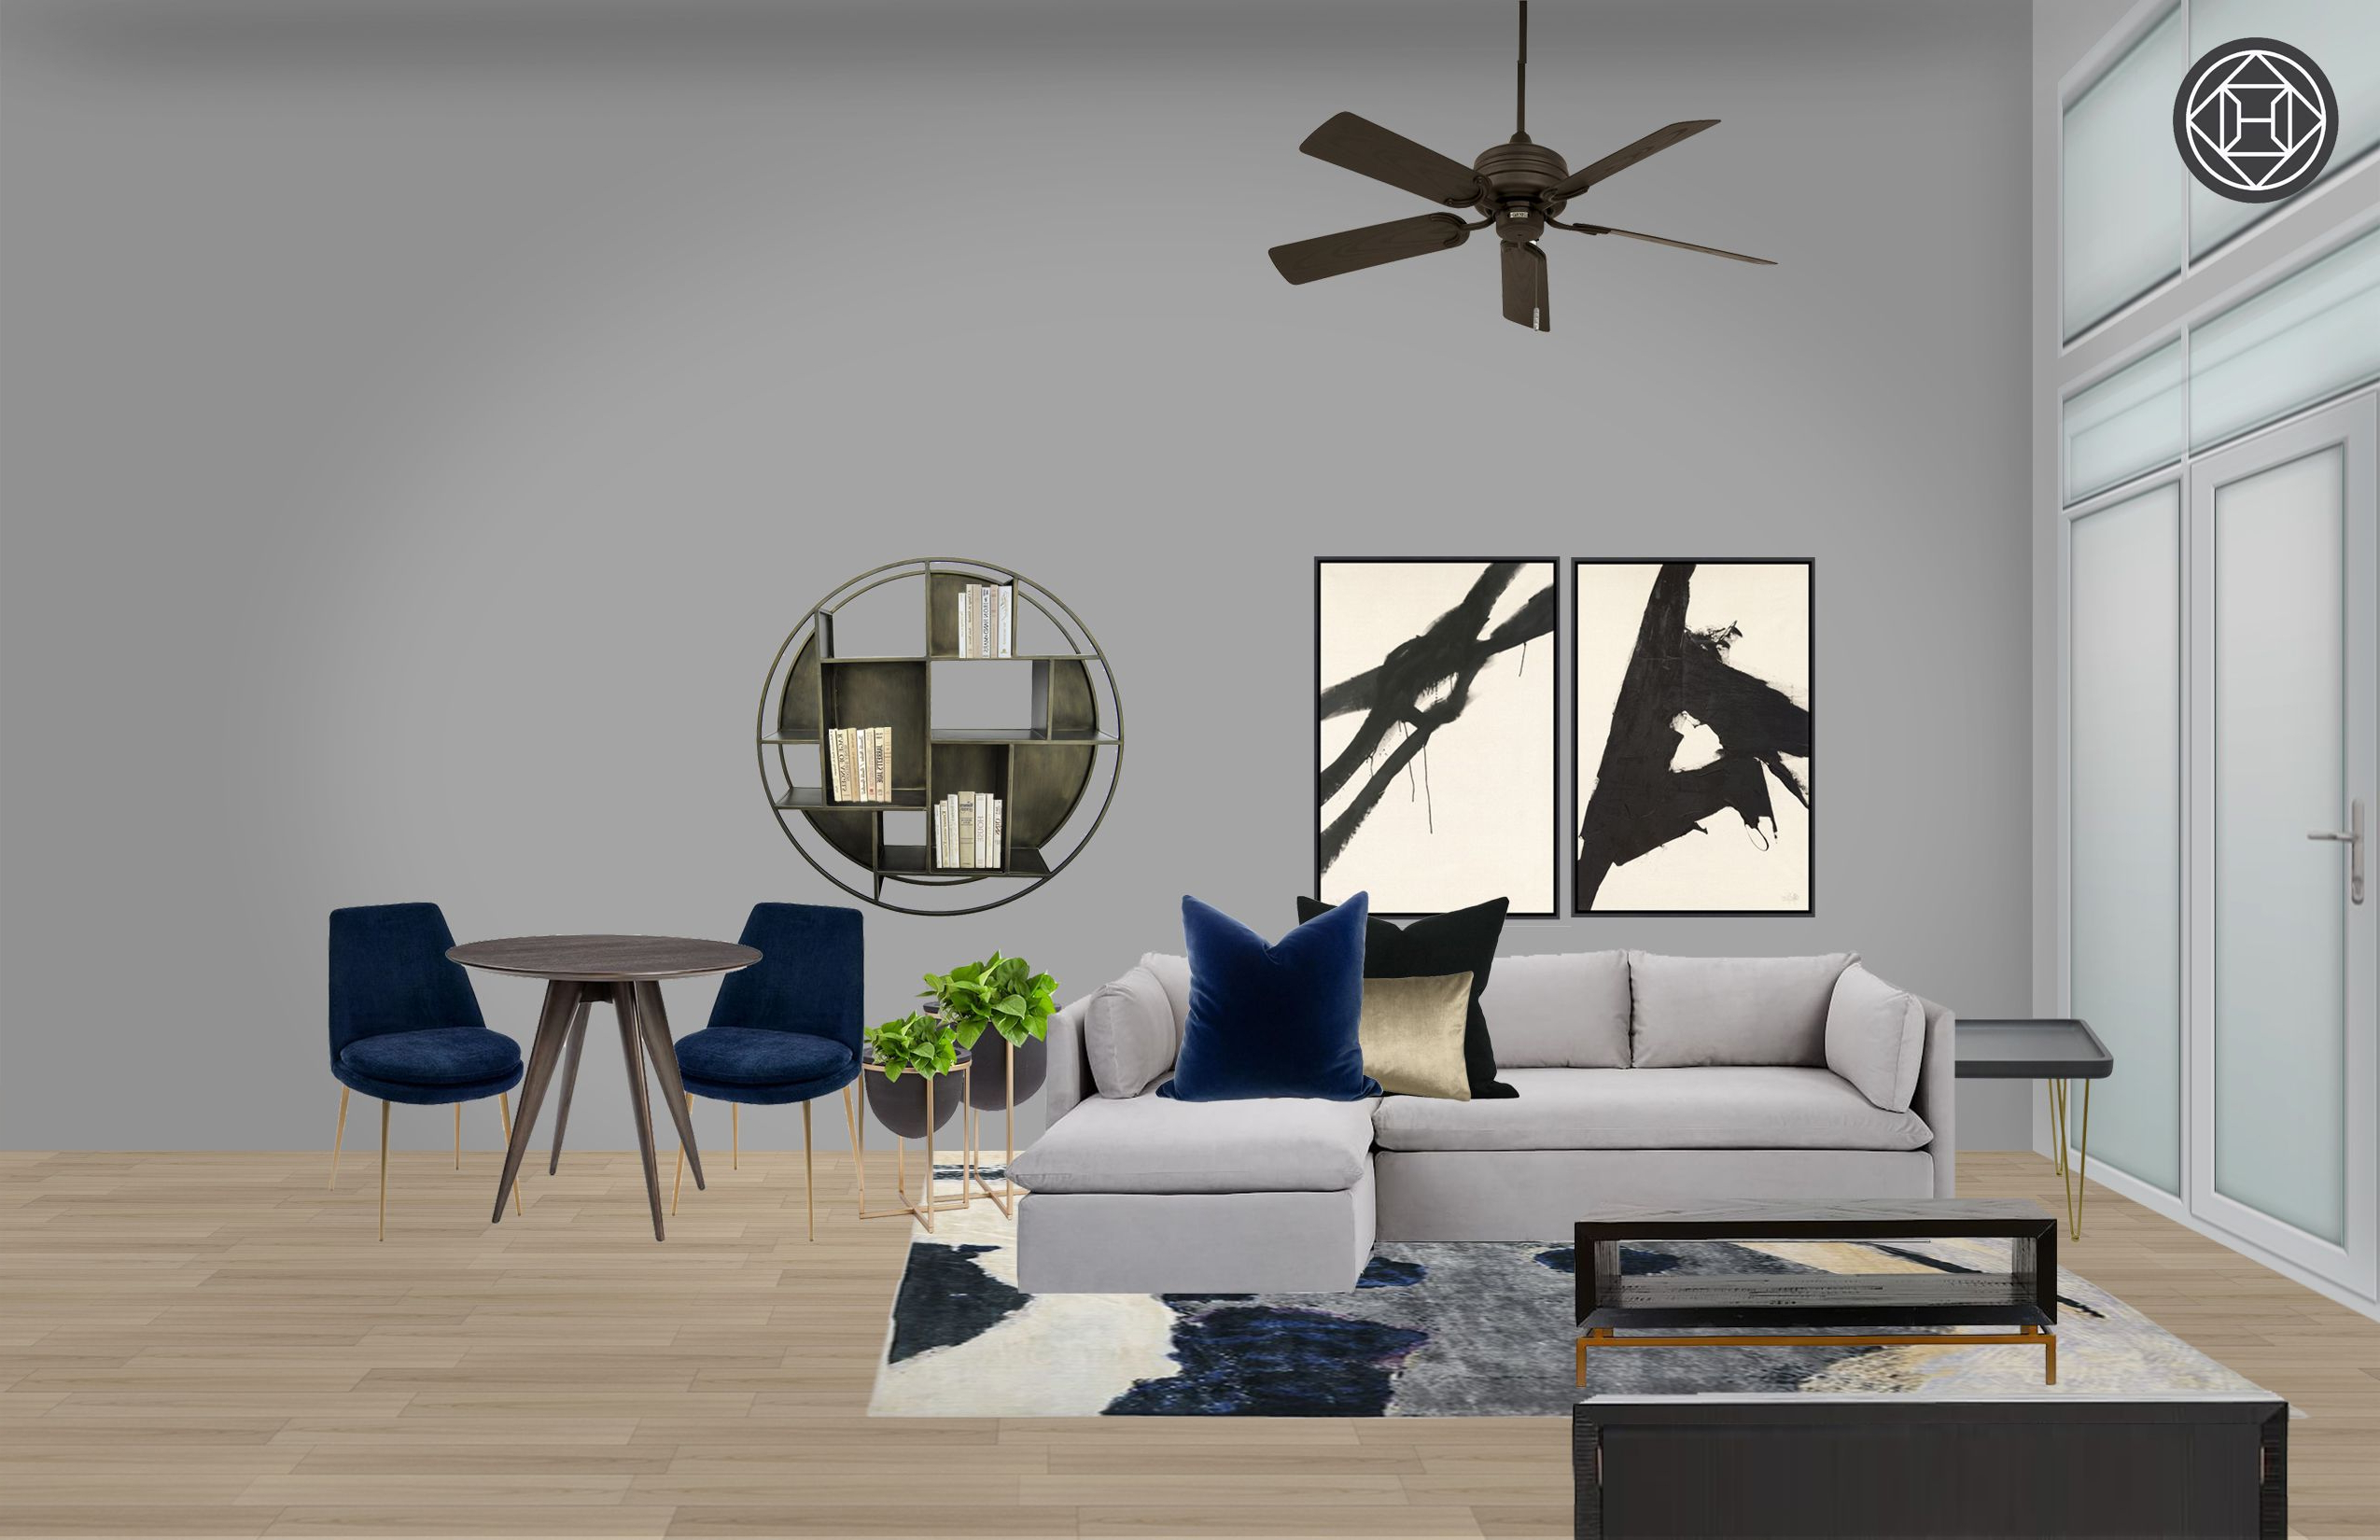 16 Luxury Live It Cozy 2 Piece Sectional Interior Design With Regard To 2019 Live It Cozy Armchairs (View 18 of 20)